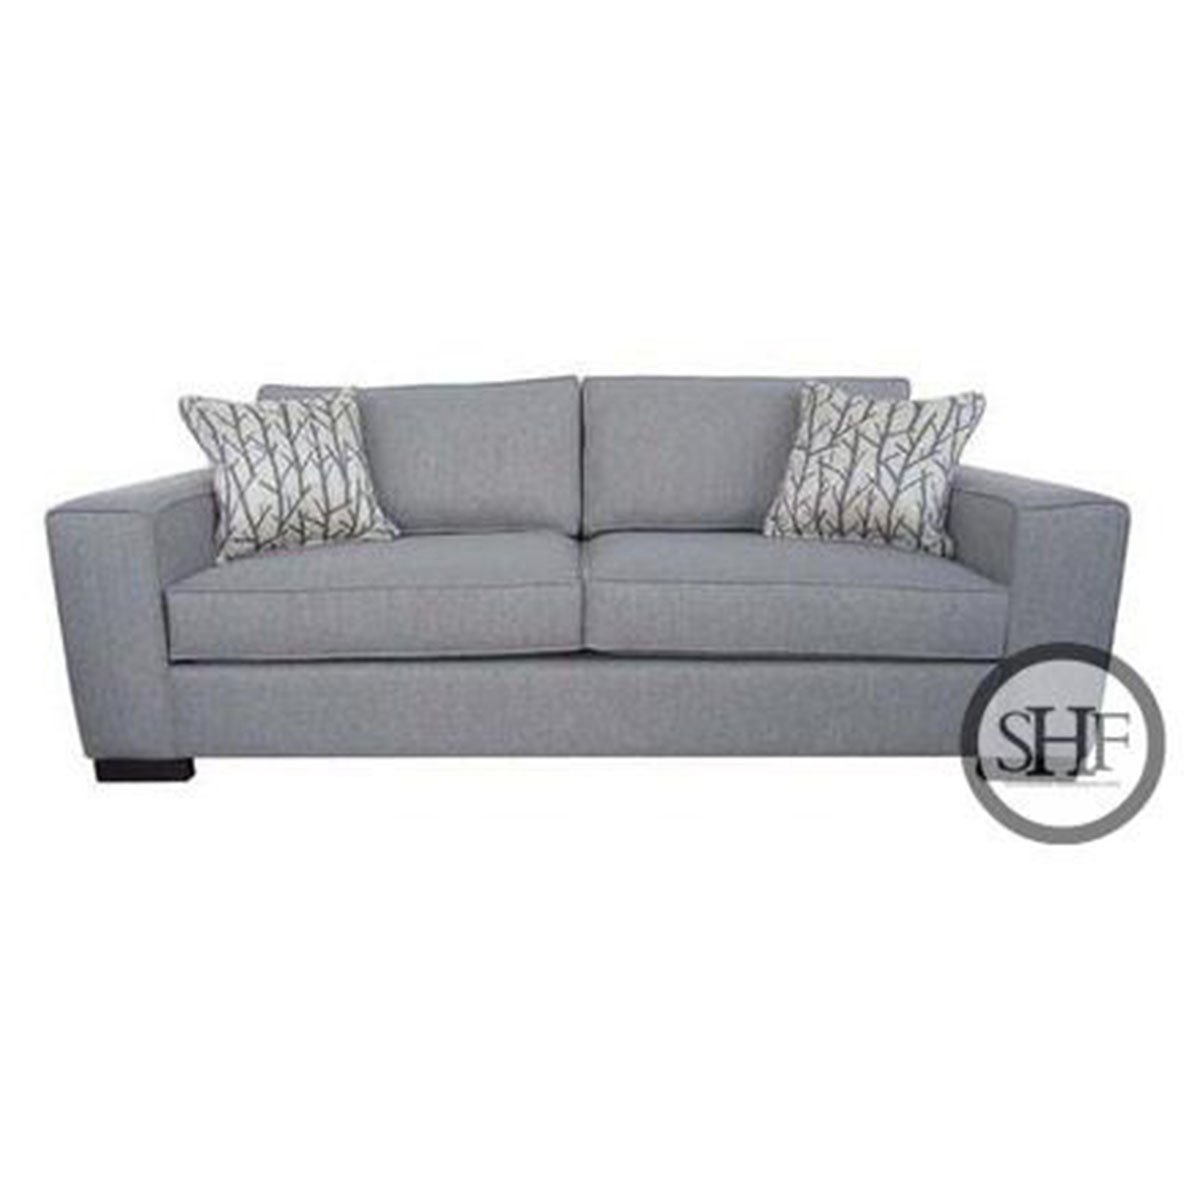 Custom Frank Sofa Made in Canada Sofas Elite